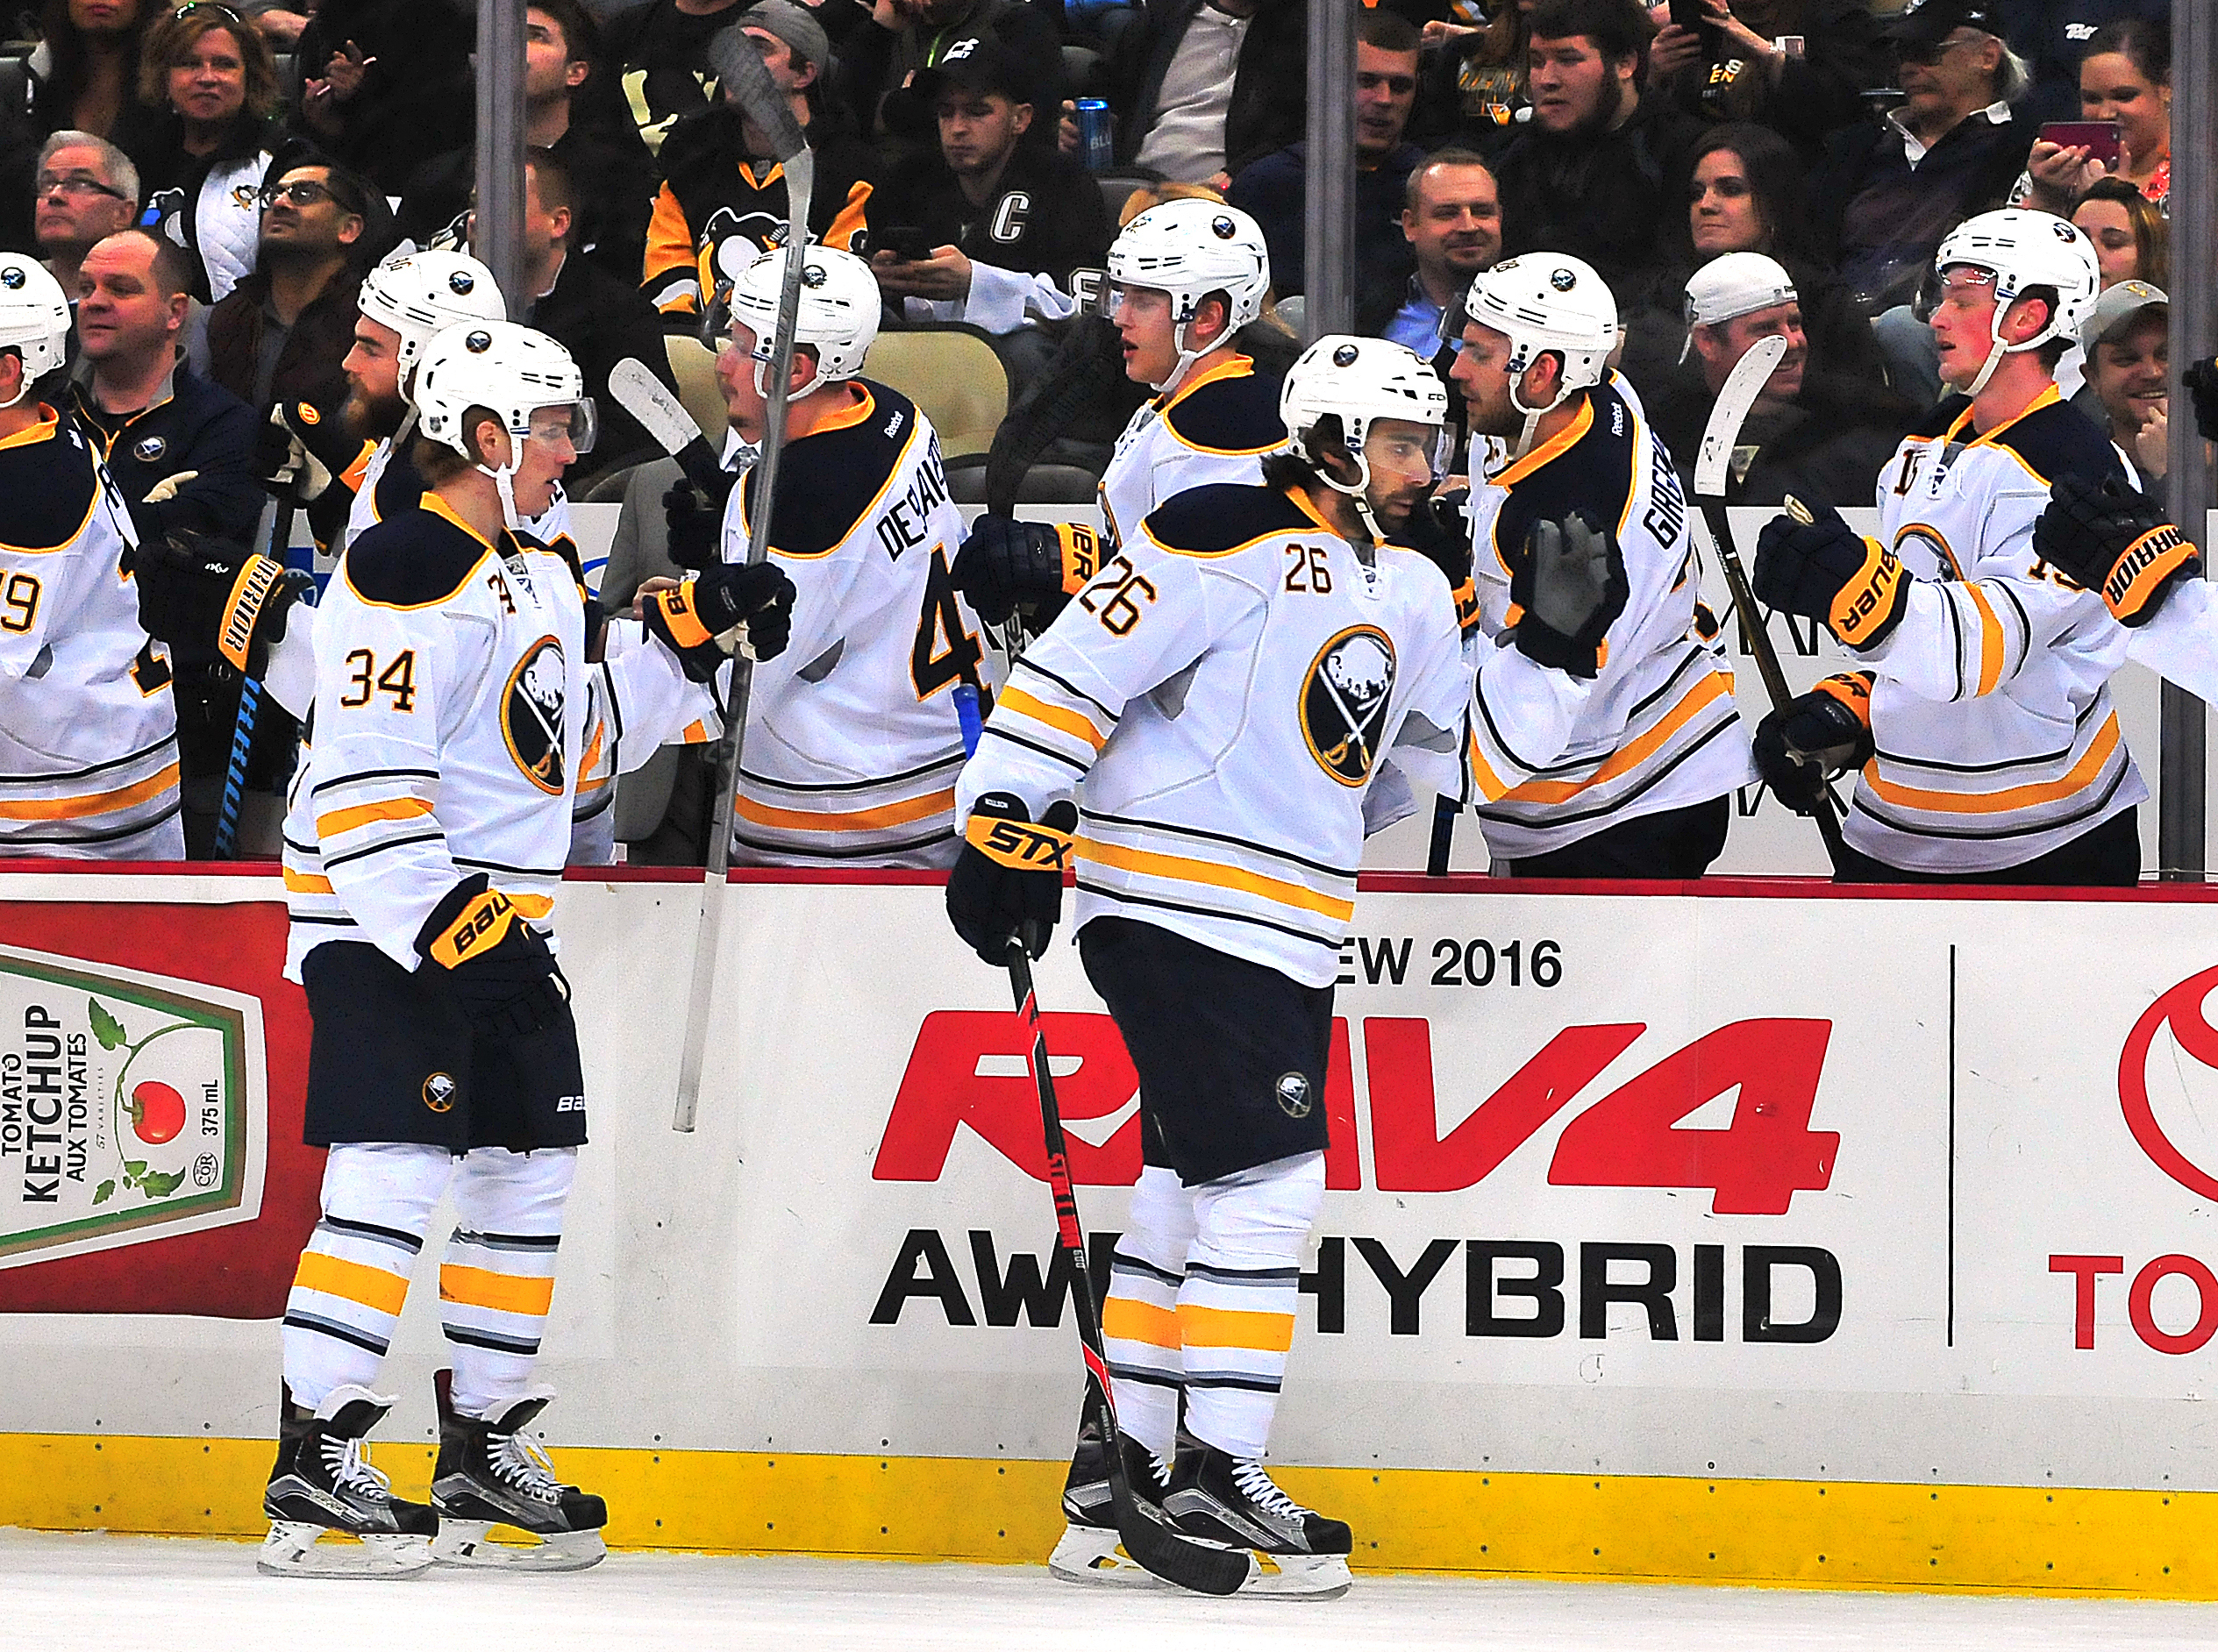 Matt Moulson (26) is congratulated by his Sabres teammates after scoring a goal against Pittsburgh. (Getty Images)